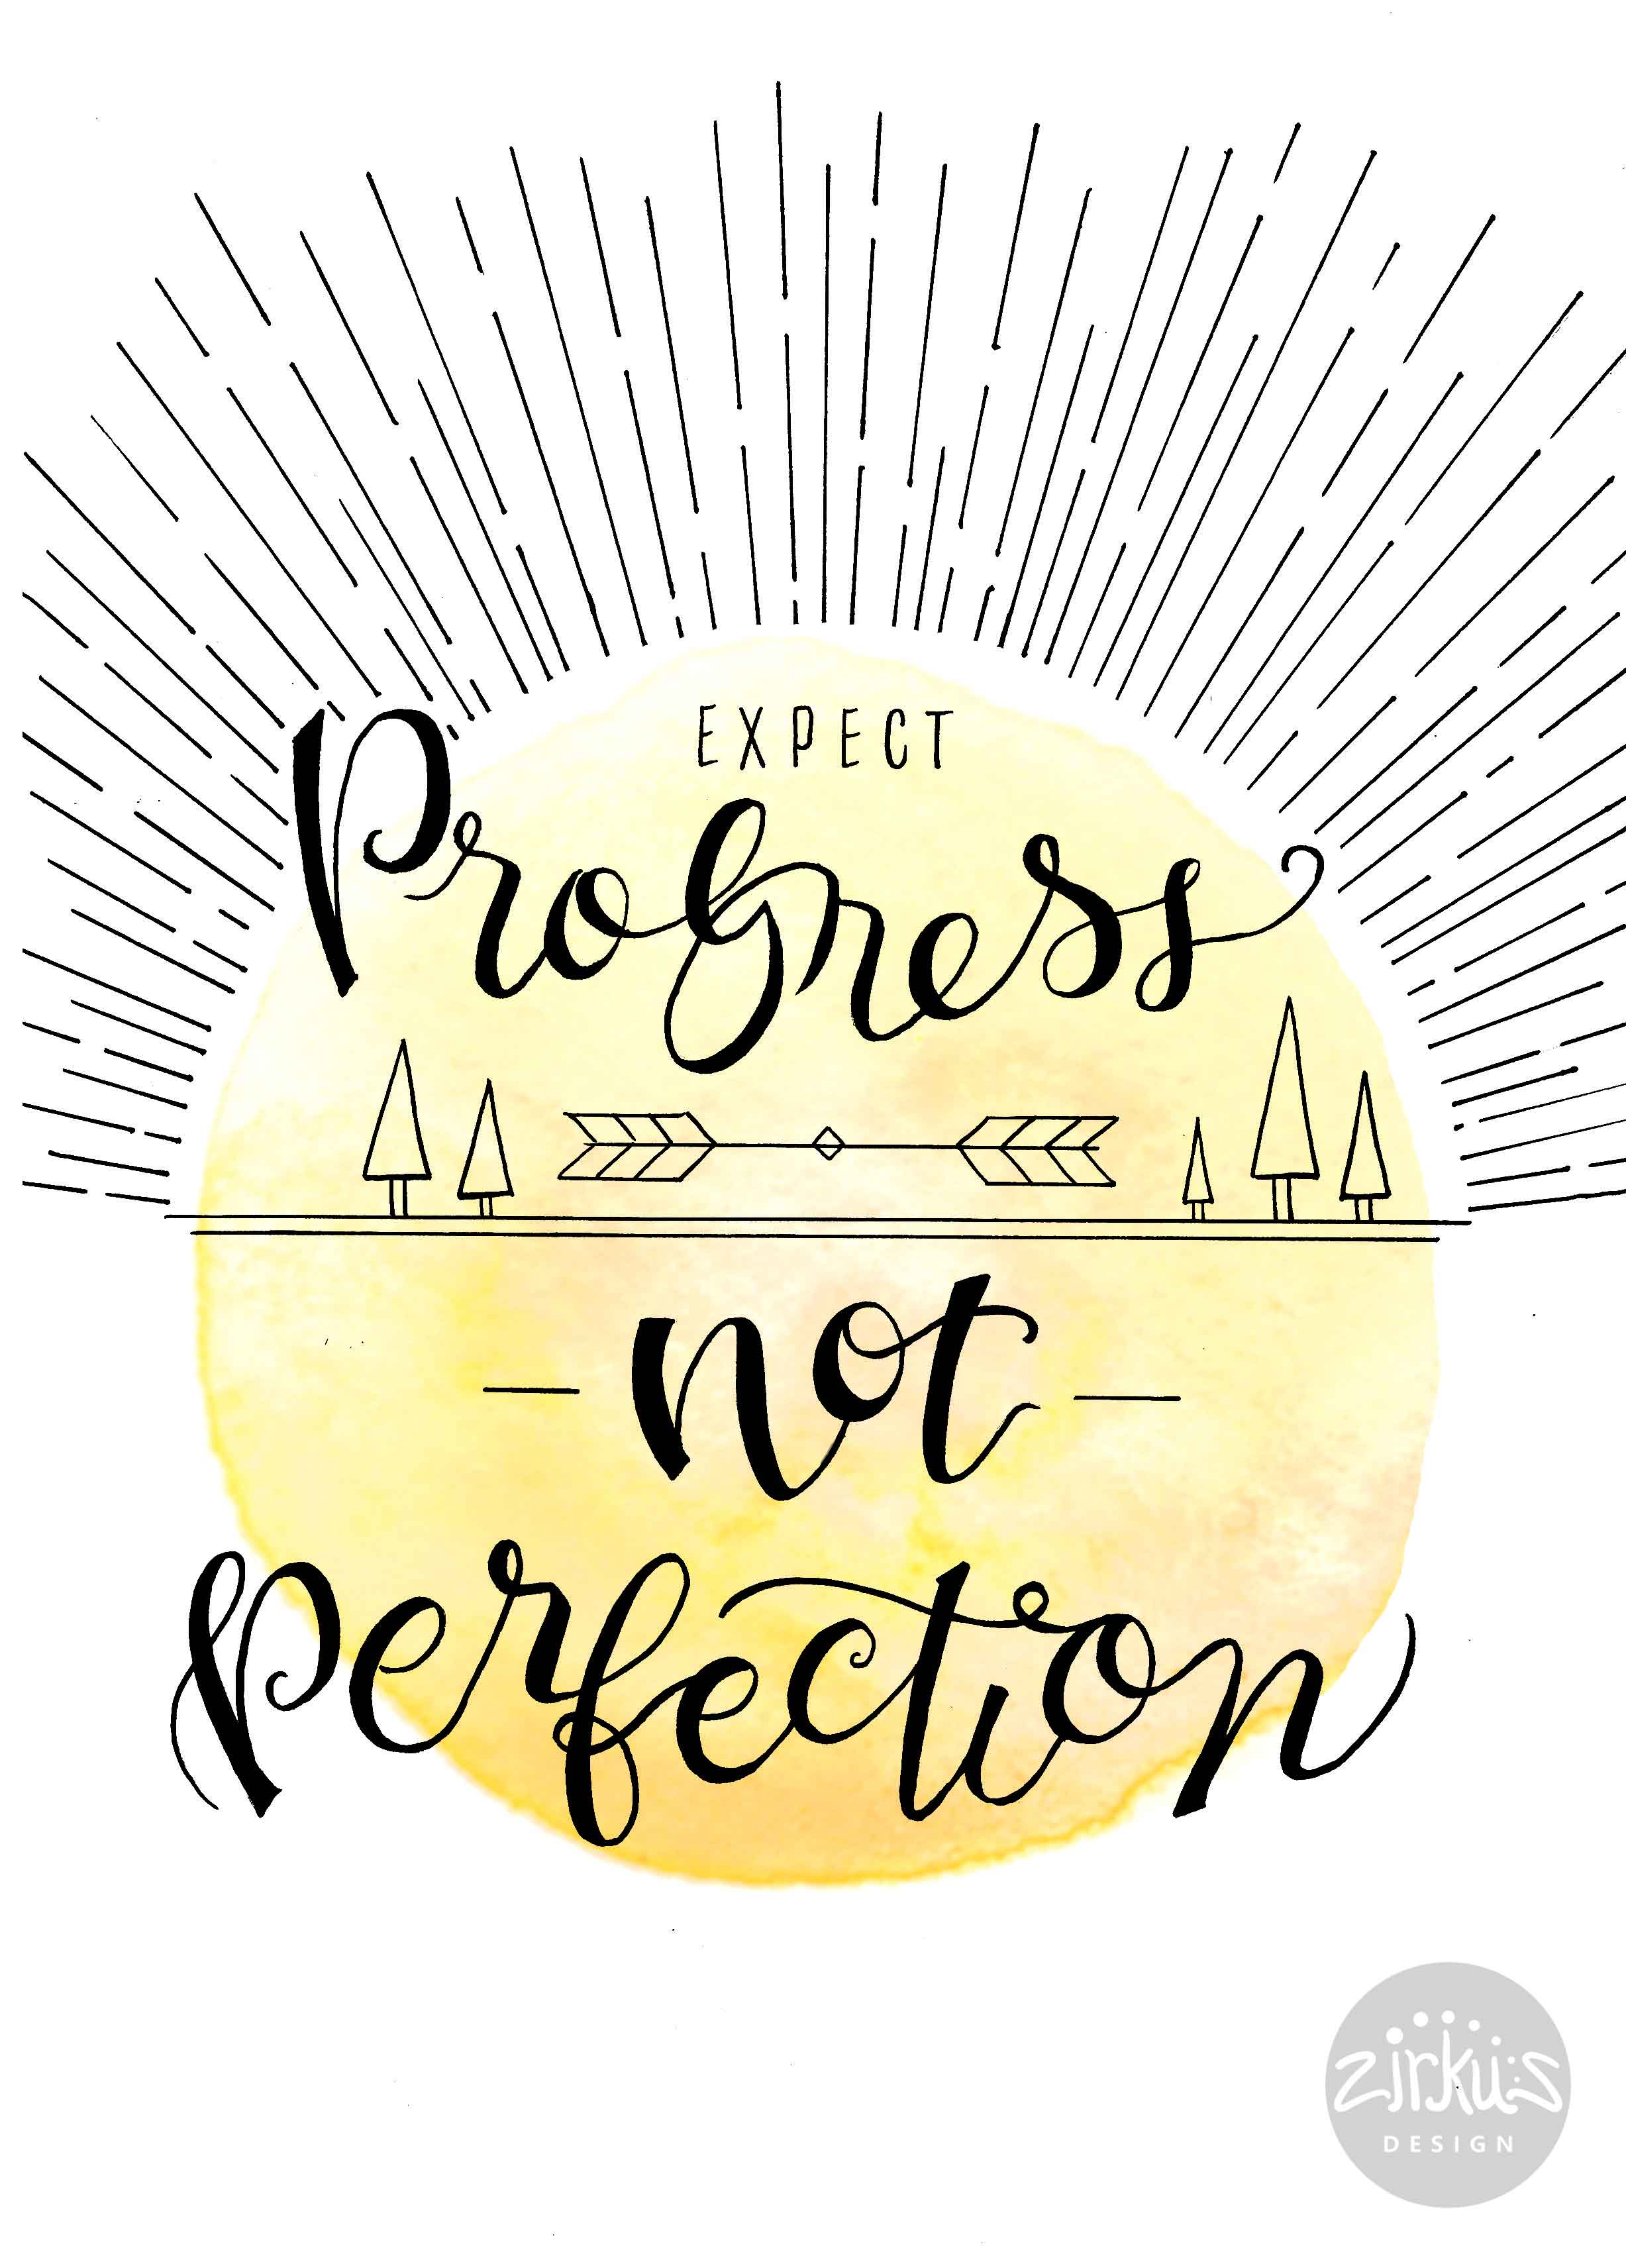 Expect Progress, Not Perfection